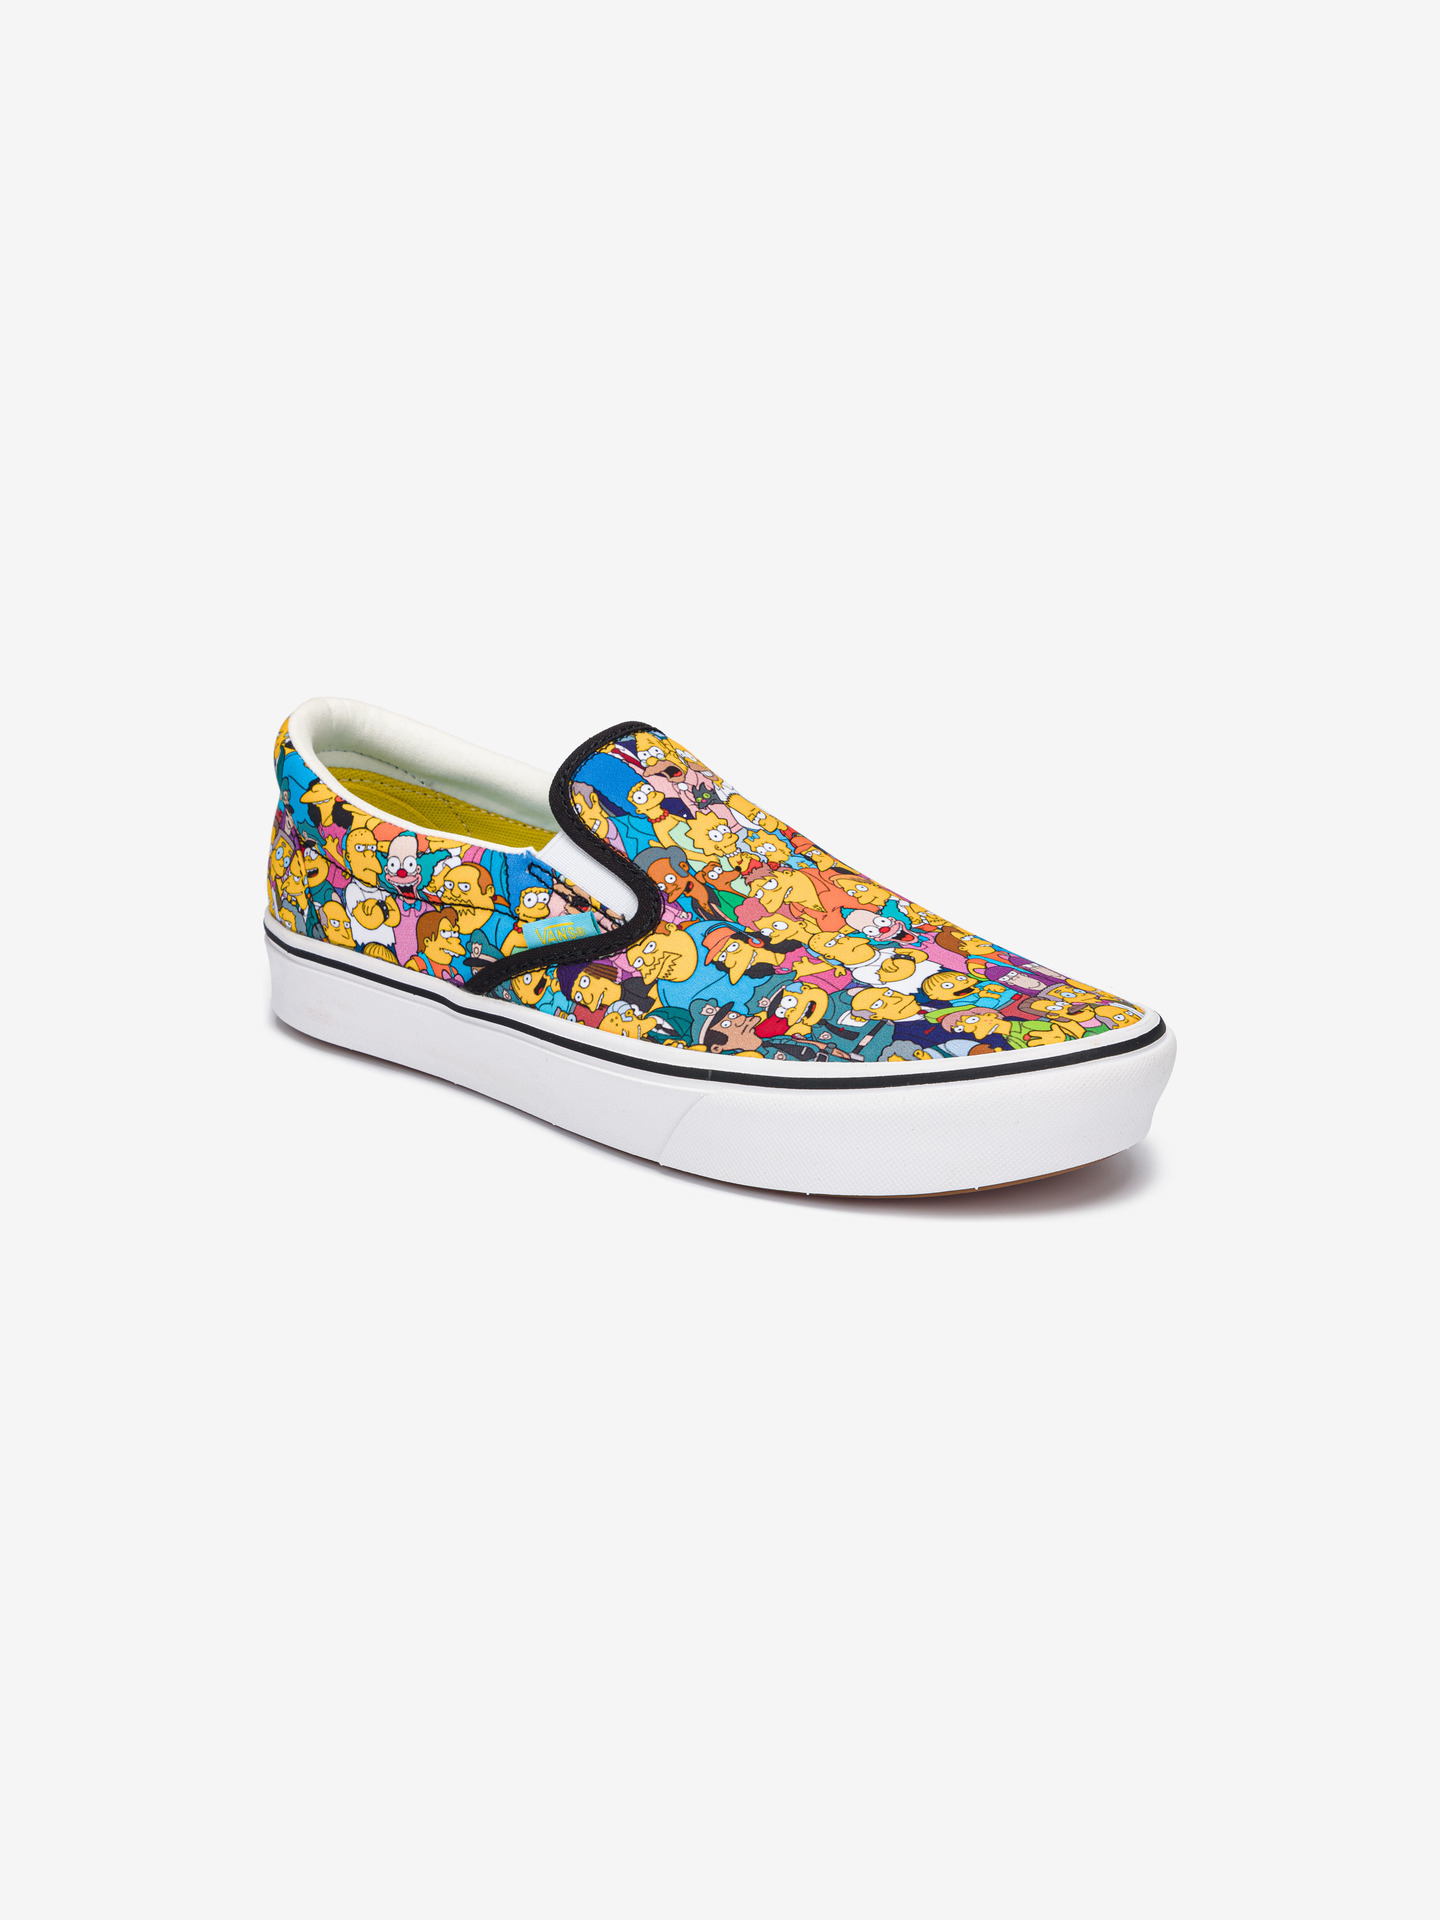 The Simpsons Comfycush Springfield Slip On Vans (2)